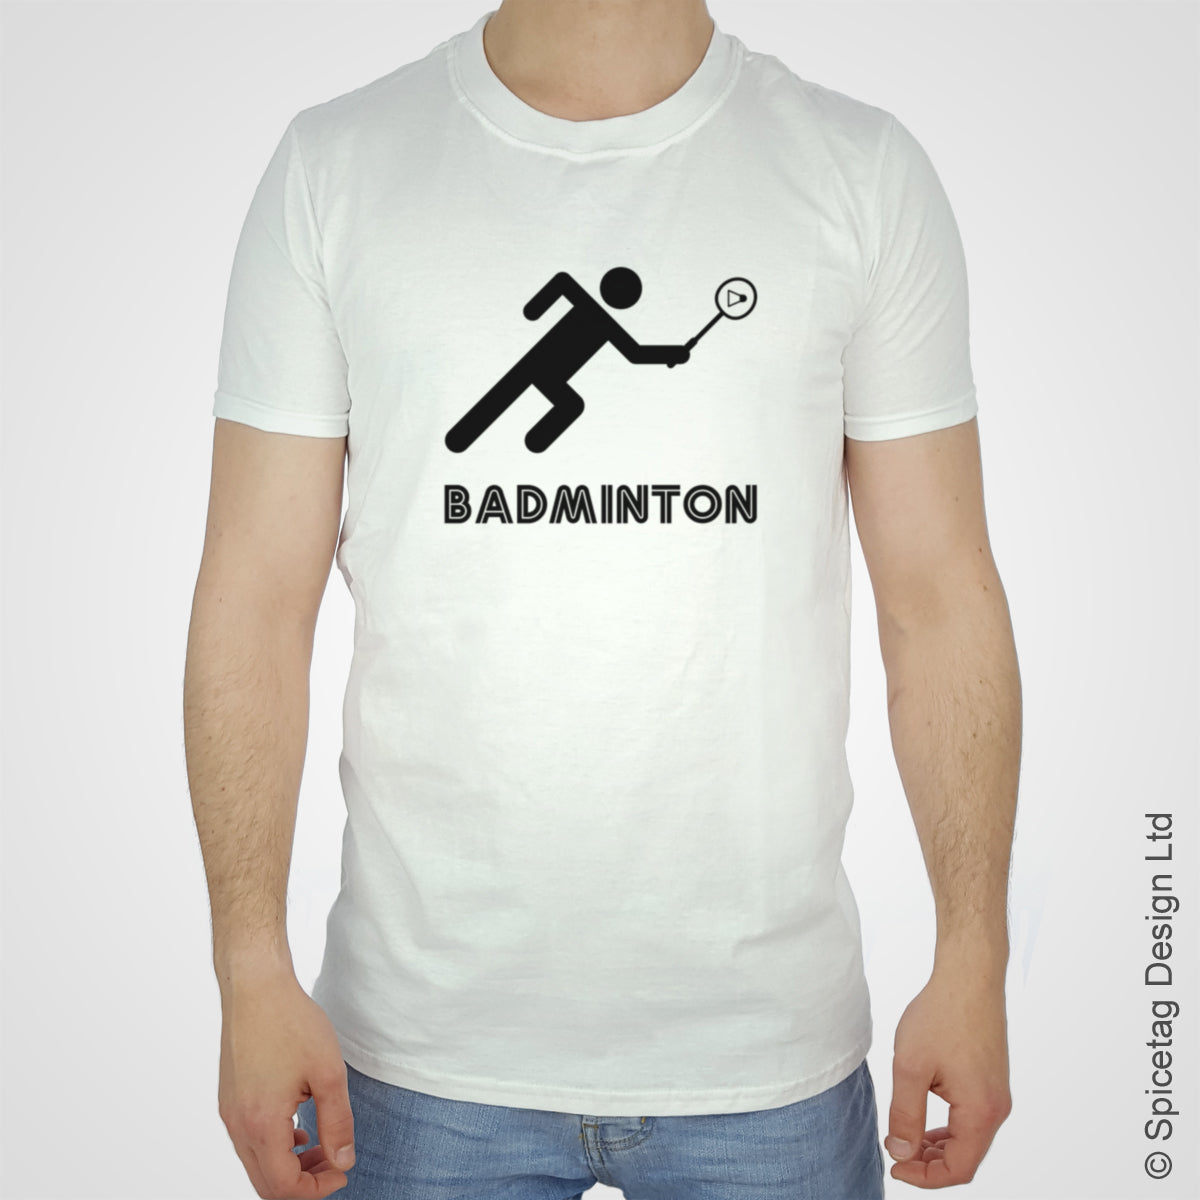 Badminton racket T-shirt Tshirt T shirt Tee clothing clothes fashion style sport sports fan olympics athletics track field health fitness world competition champion